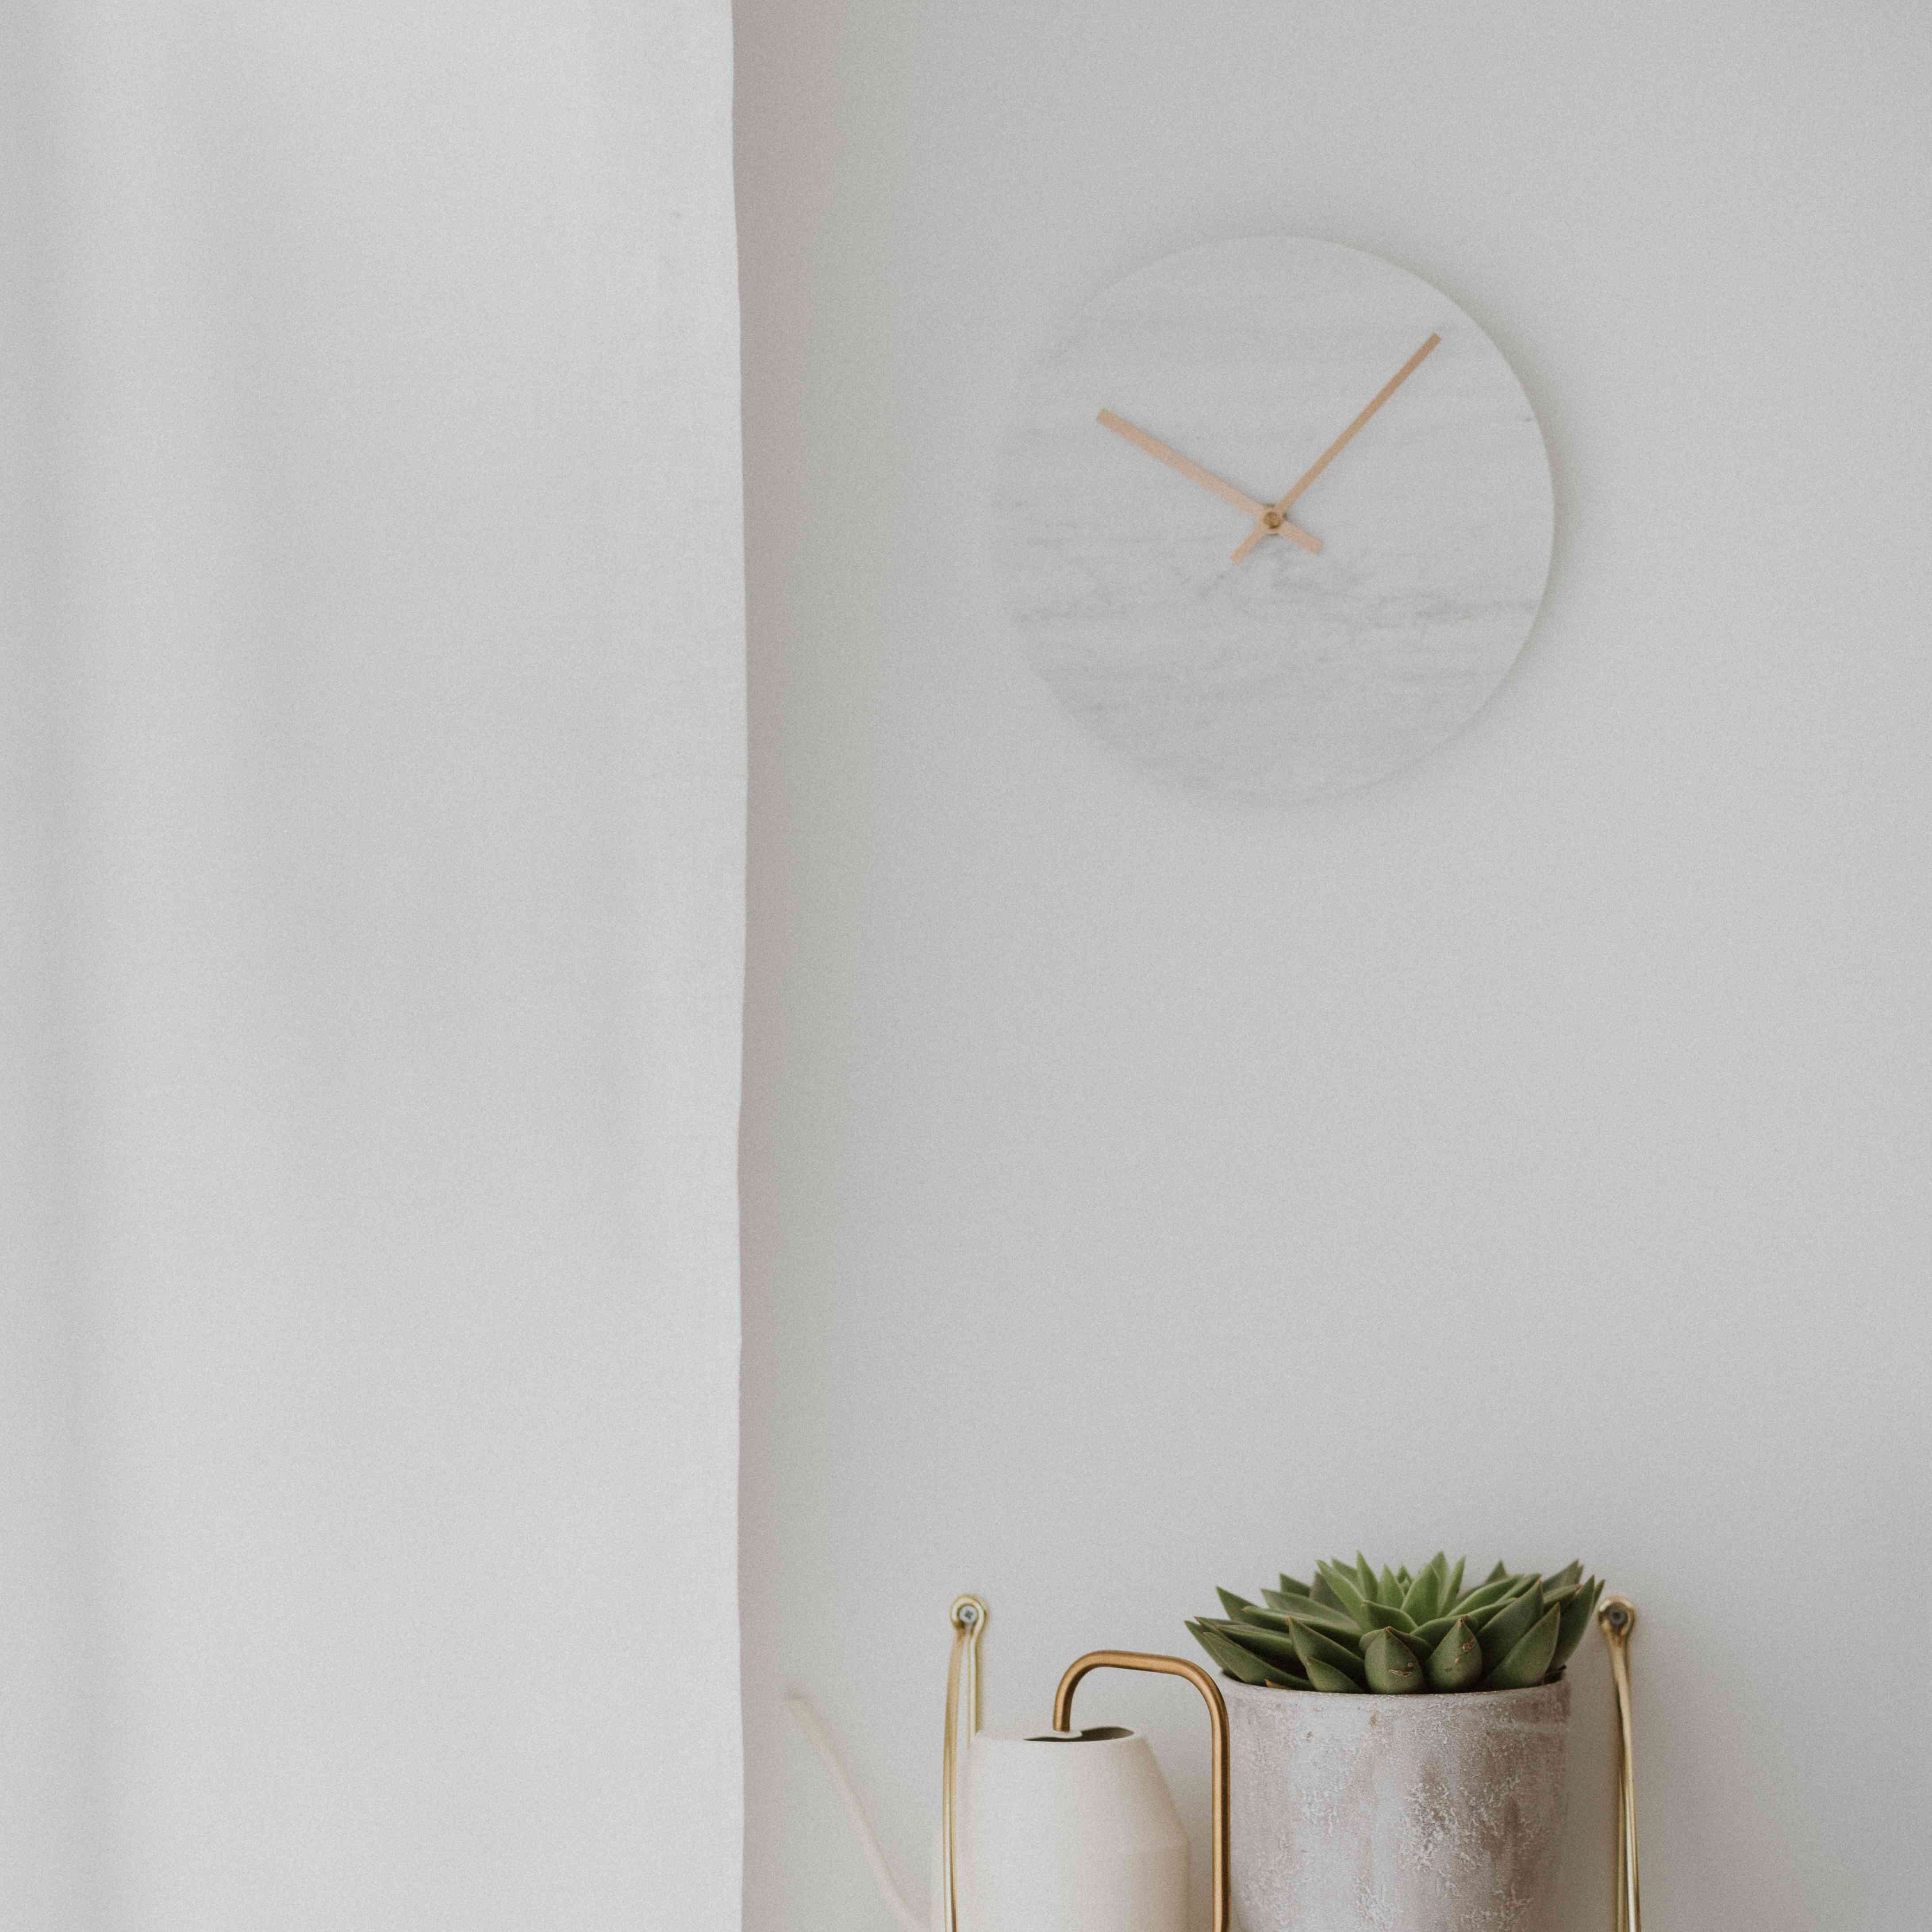 gray, white and metallic accents with a clock, planter and drape